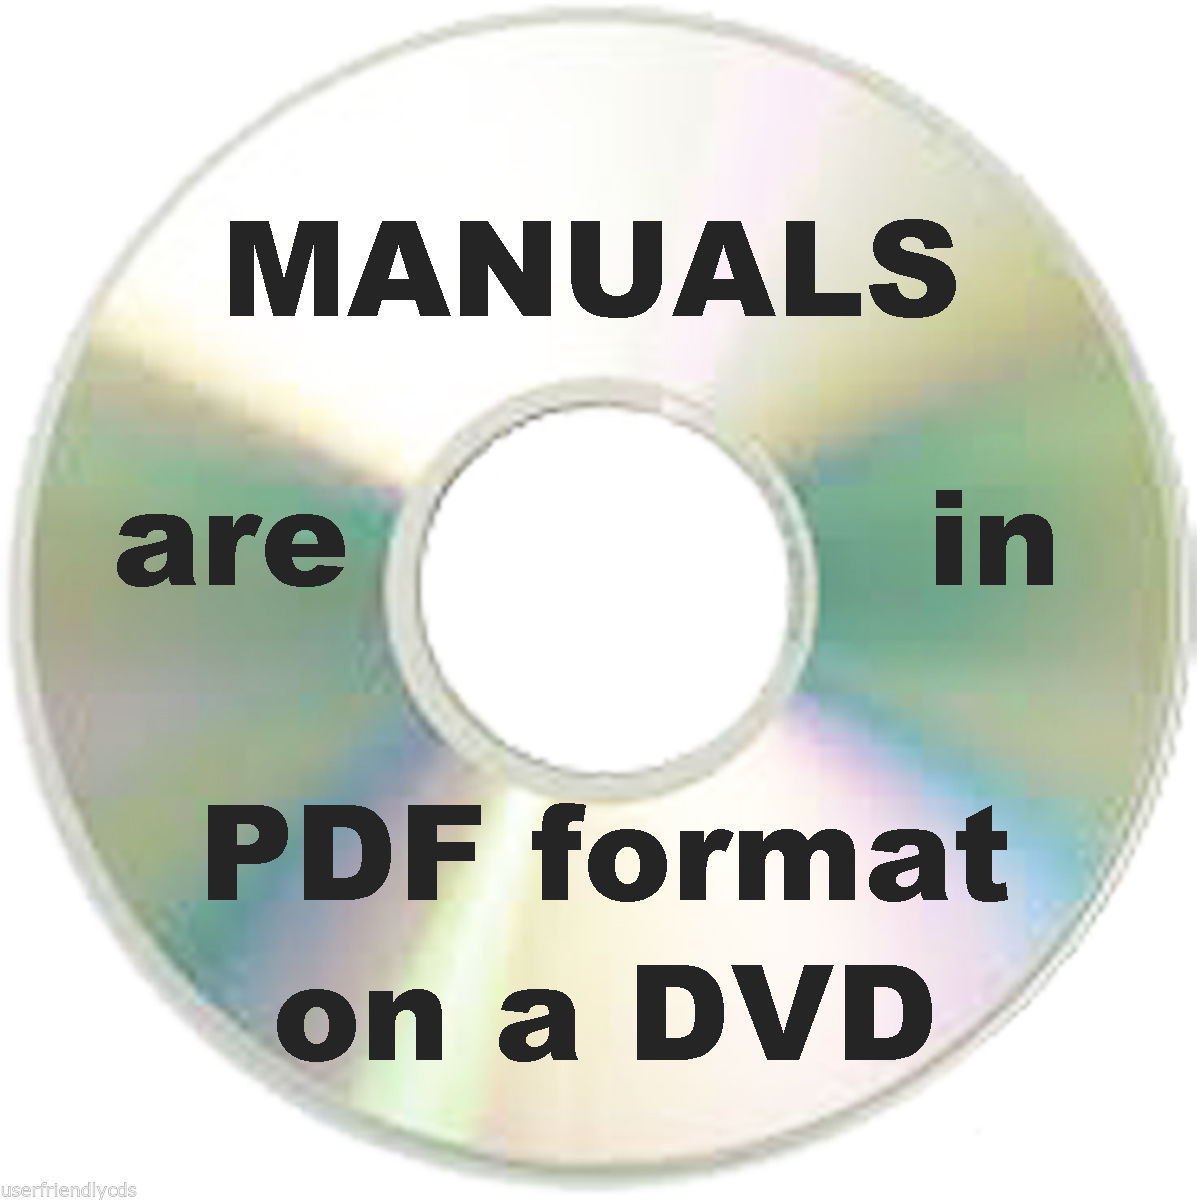 Ricoh B/W Analog copier SERVICE MANUALS manual & PARTS CATALOG on a DVD image 2